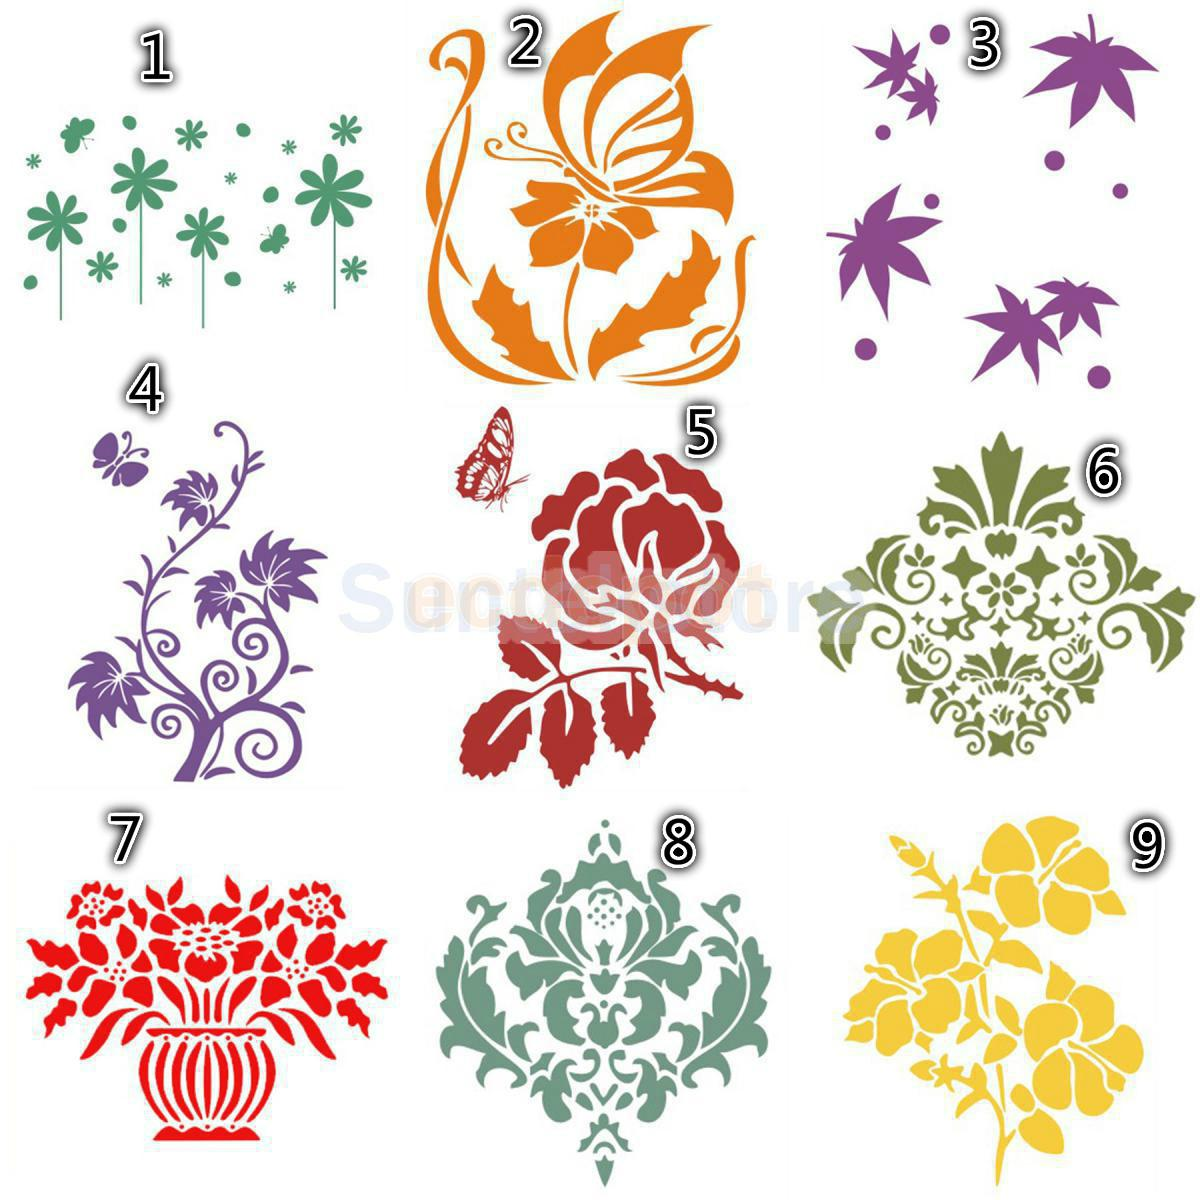 Wall Paint Decor Murals Stencil Template